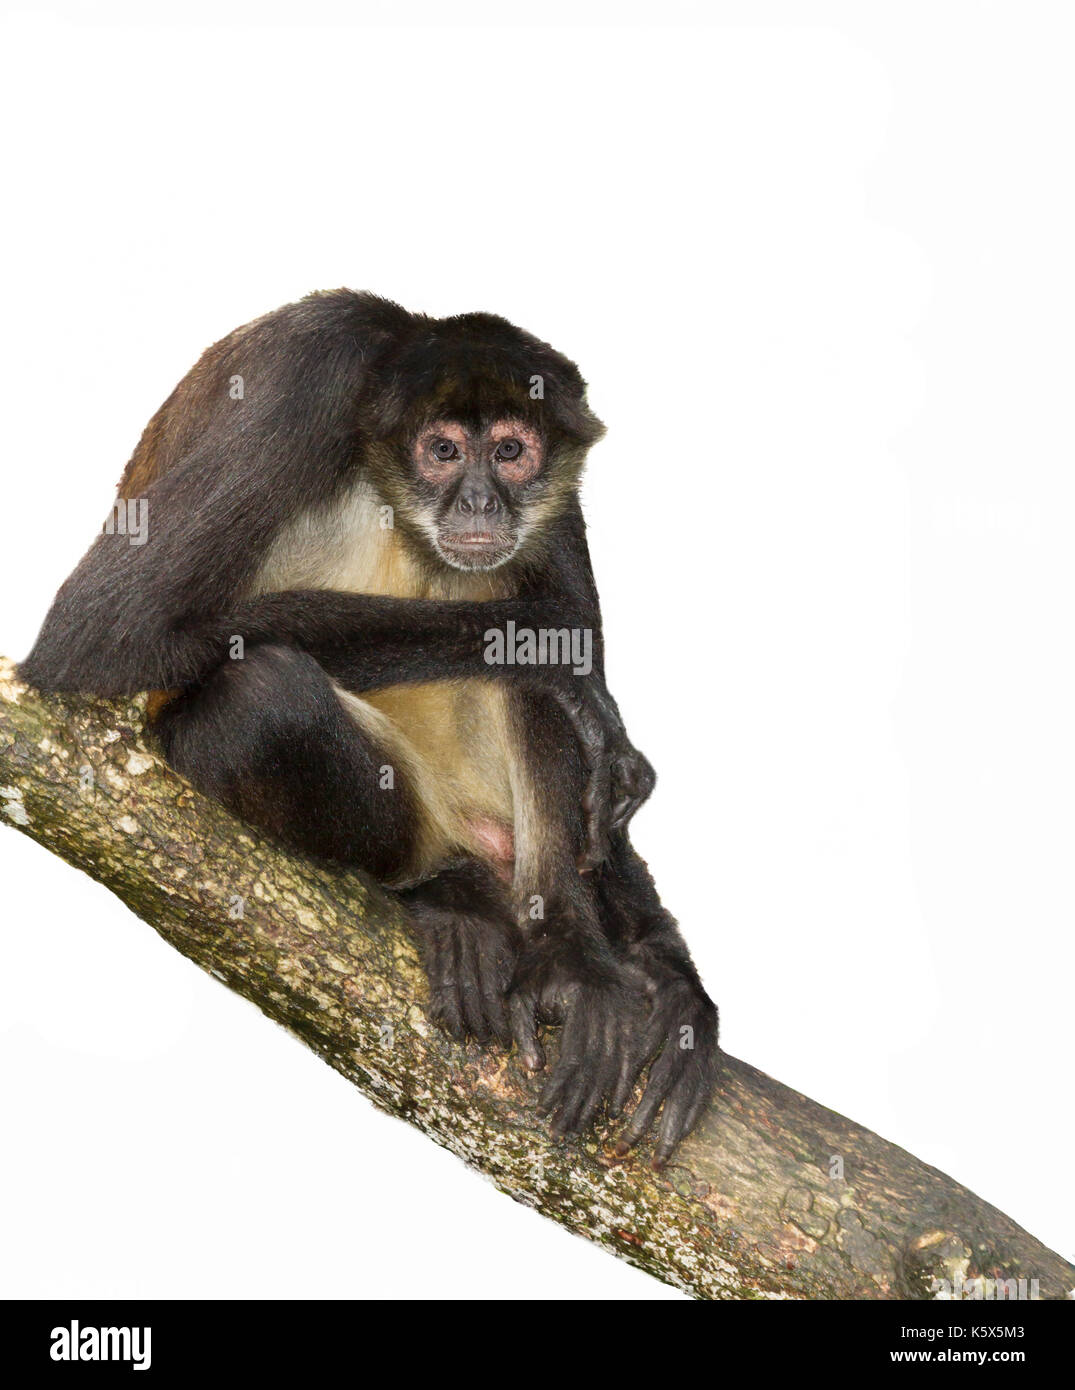 Geoffroy's spider monkey at the tree, cutout,  Belize, Central America - Stock Image